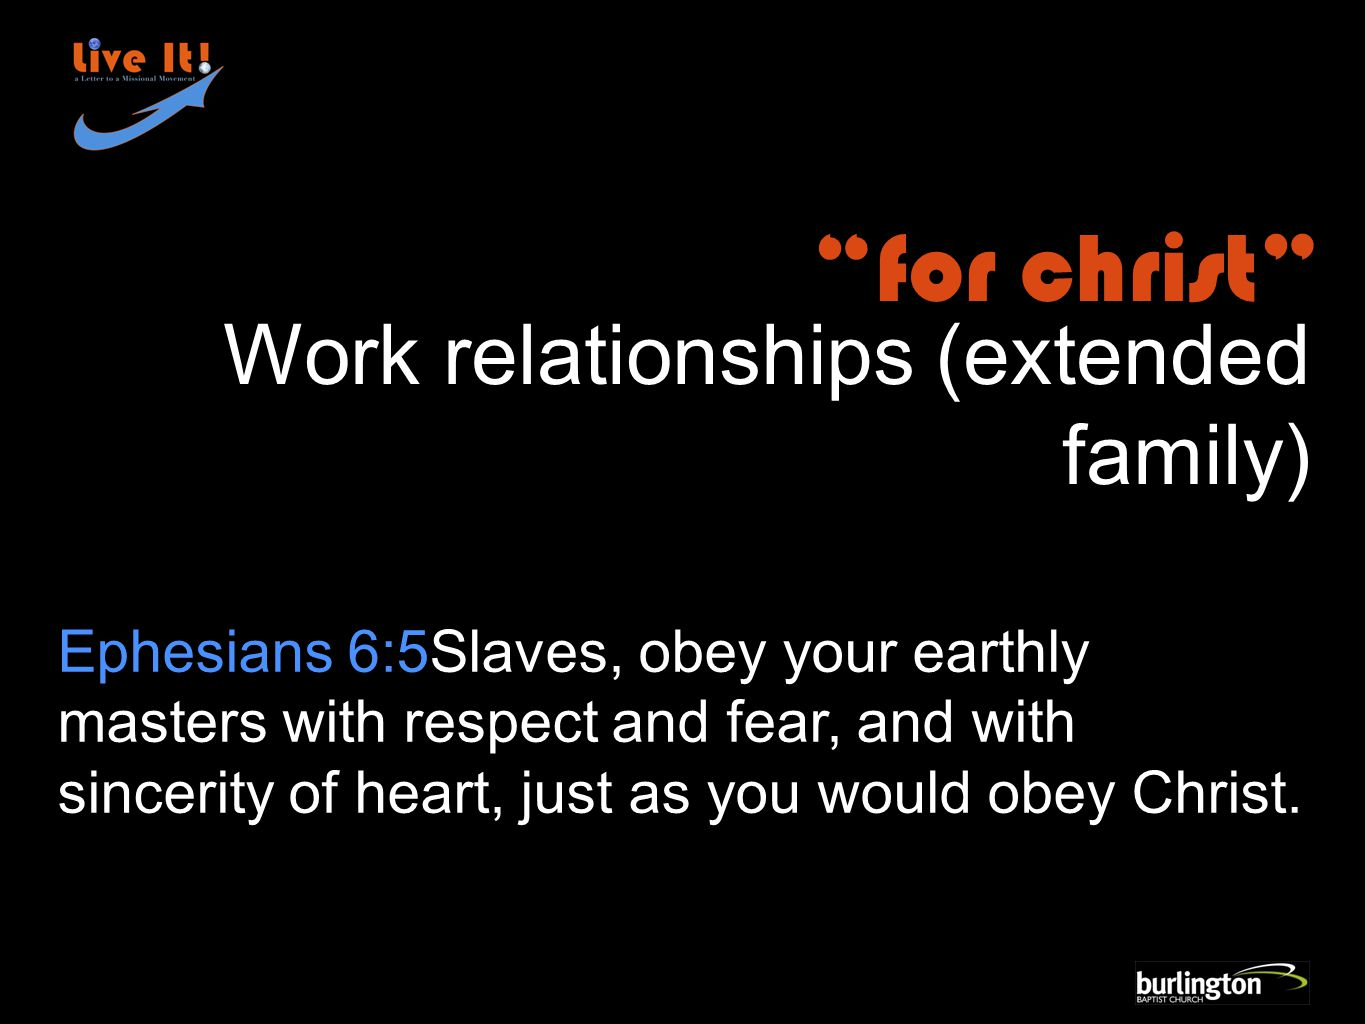 Ephesians 6:5Slaves, obey your earthly masters with respect and fear, and with sincerity of heart, just as you would obey Christ.